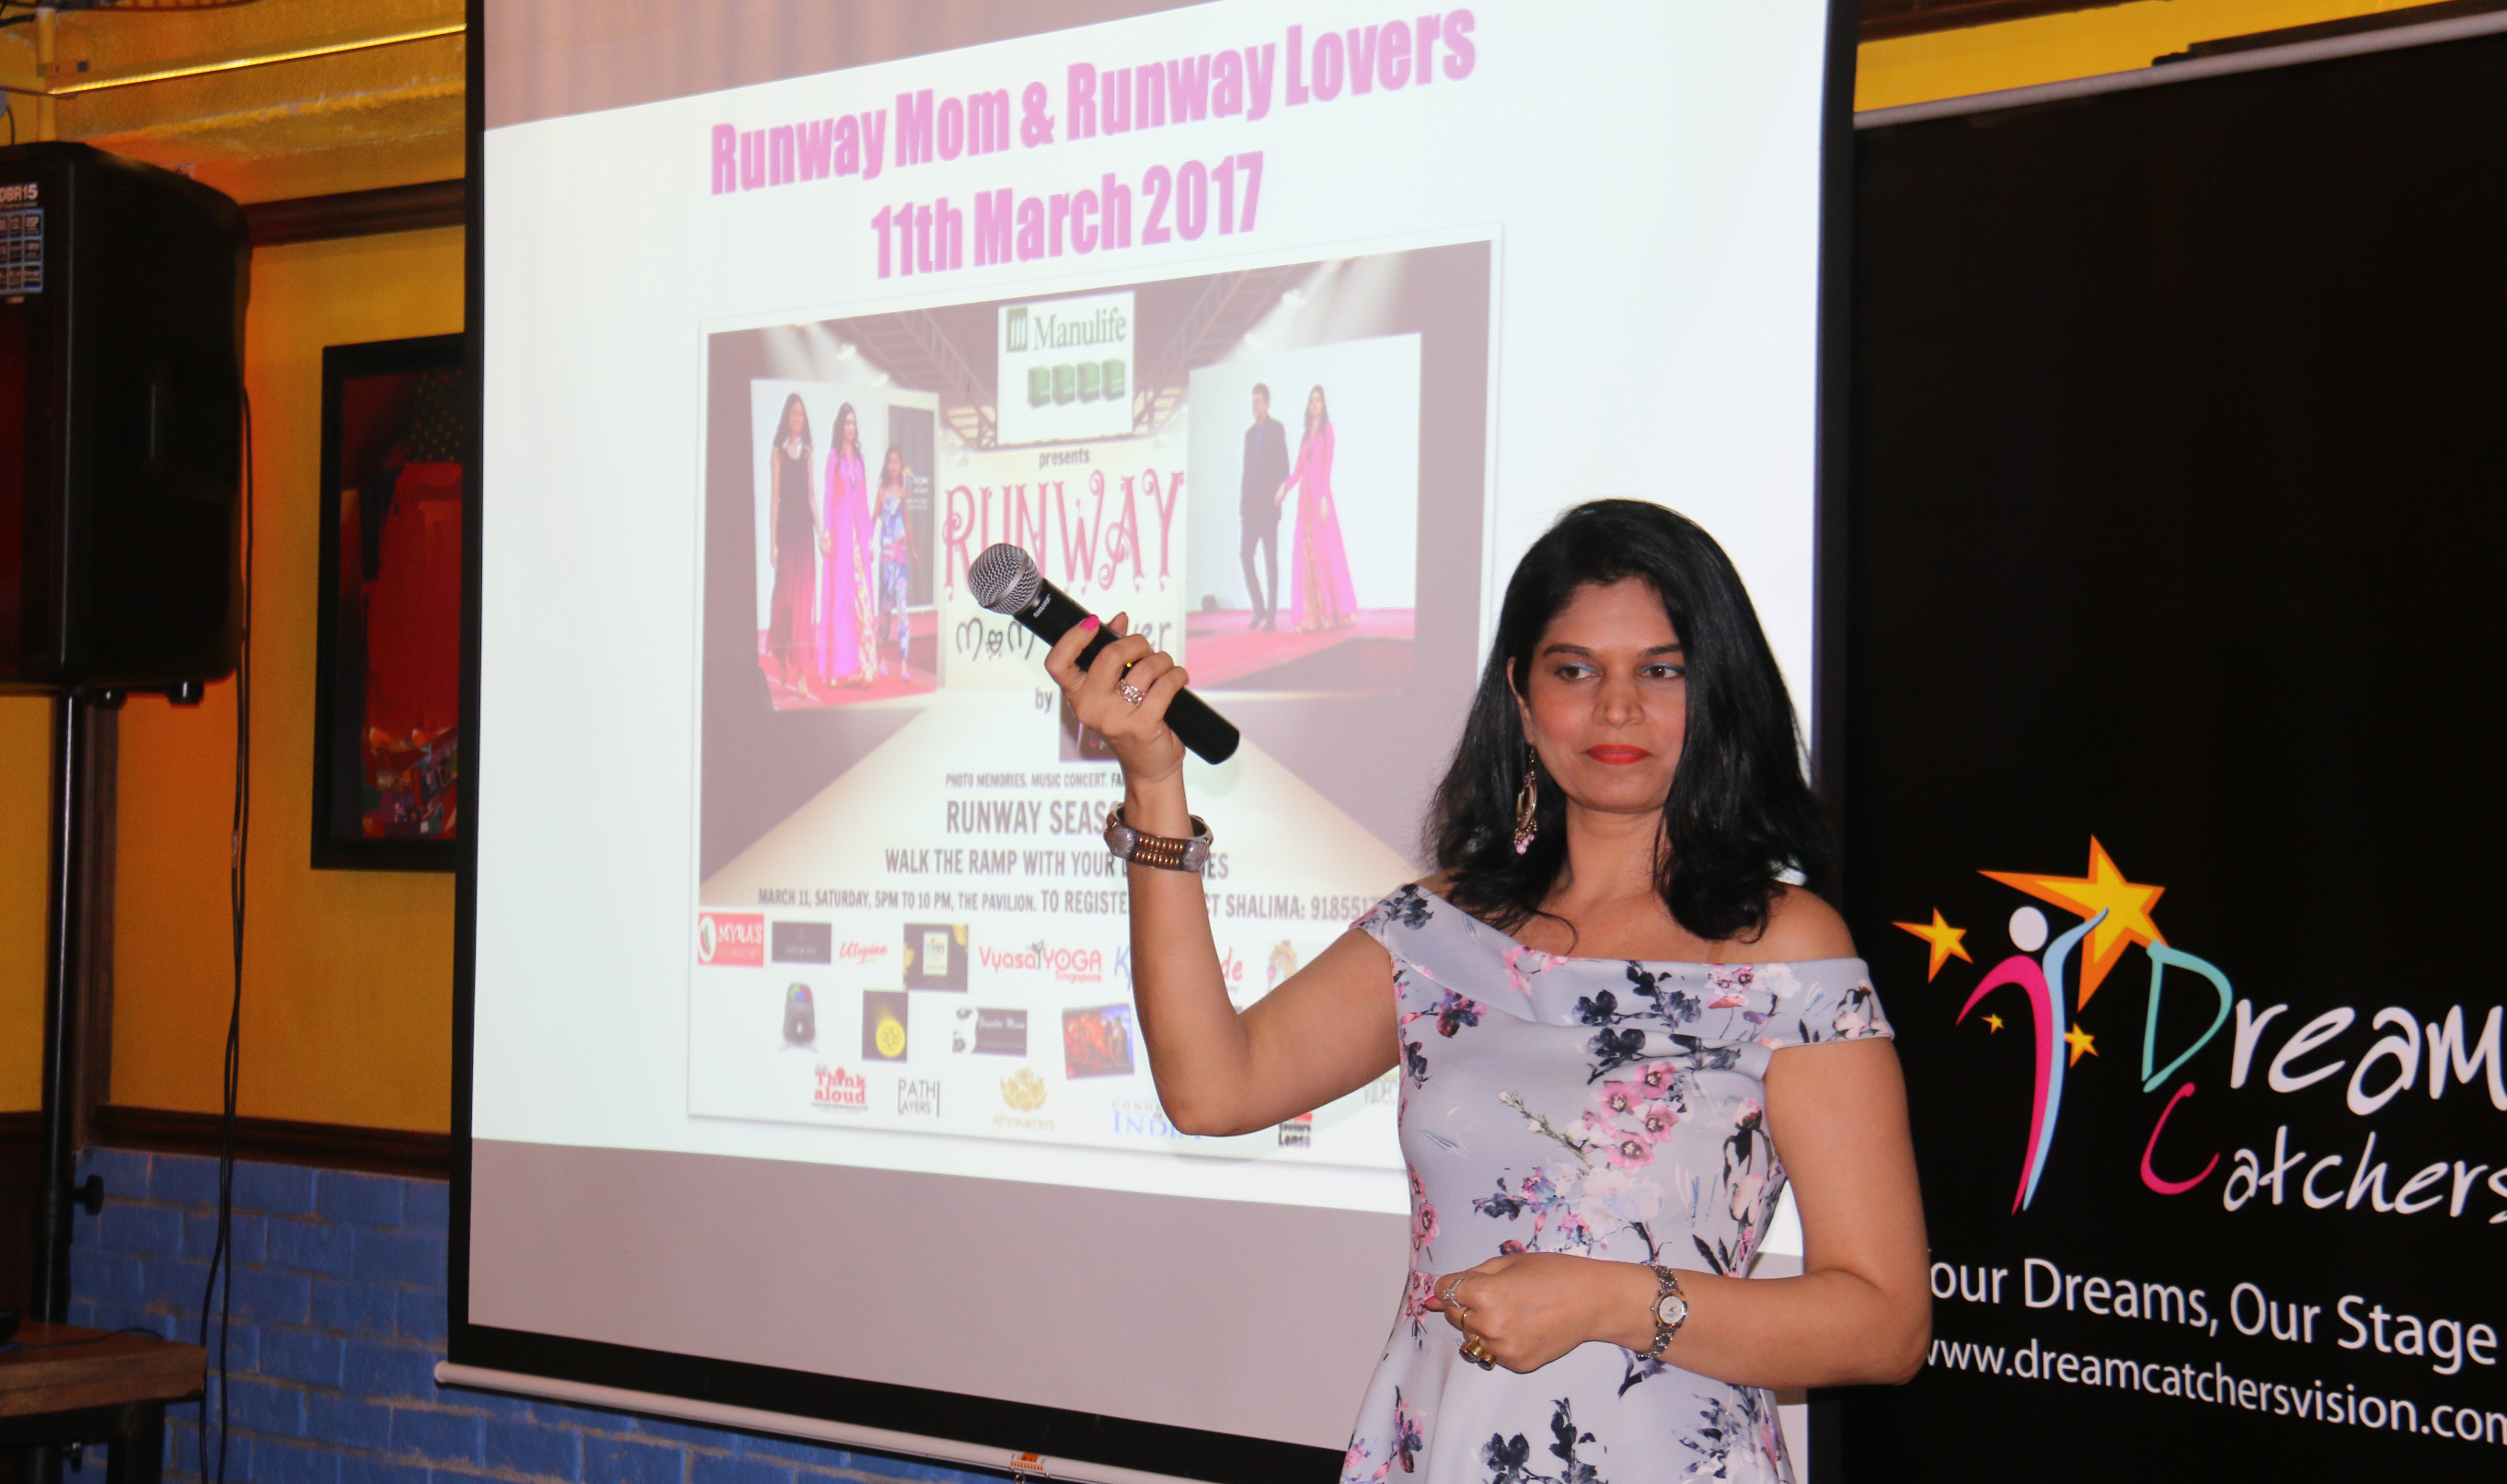 Shalima Motial - the founder and CEO of Dream Catchers. Photo courtesy: Shalima Motial